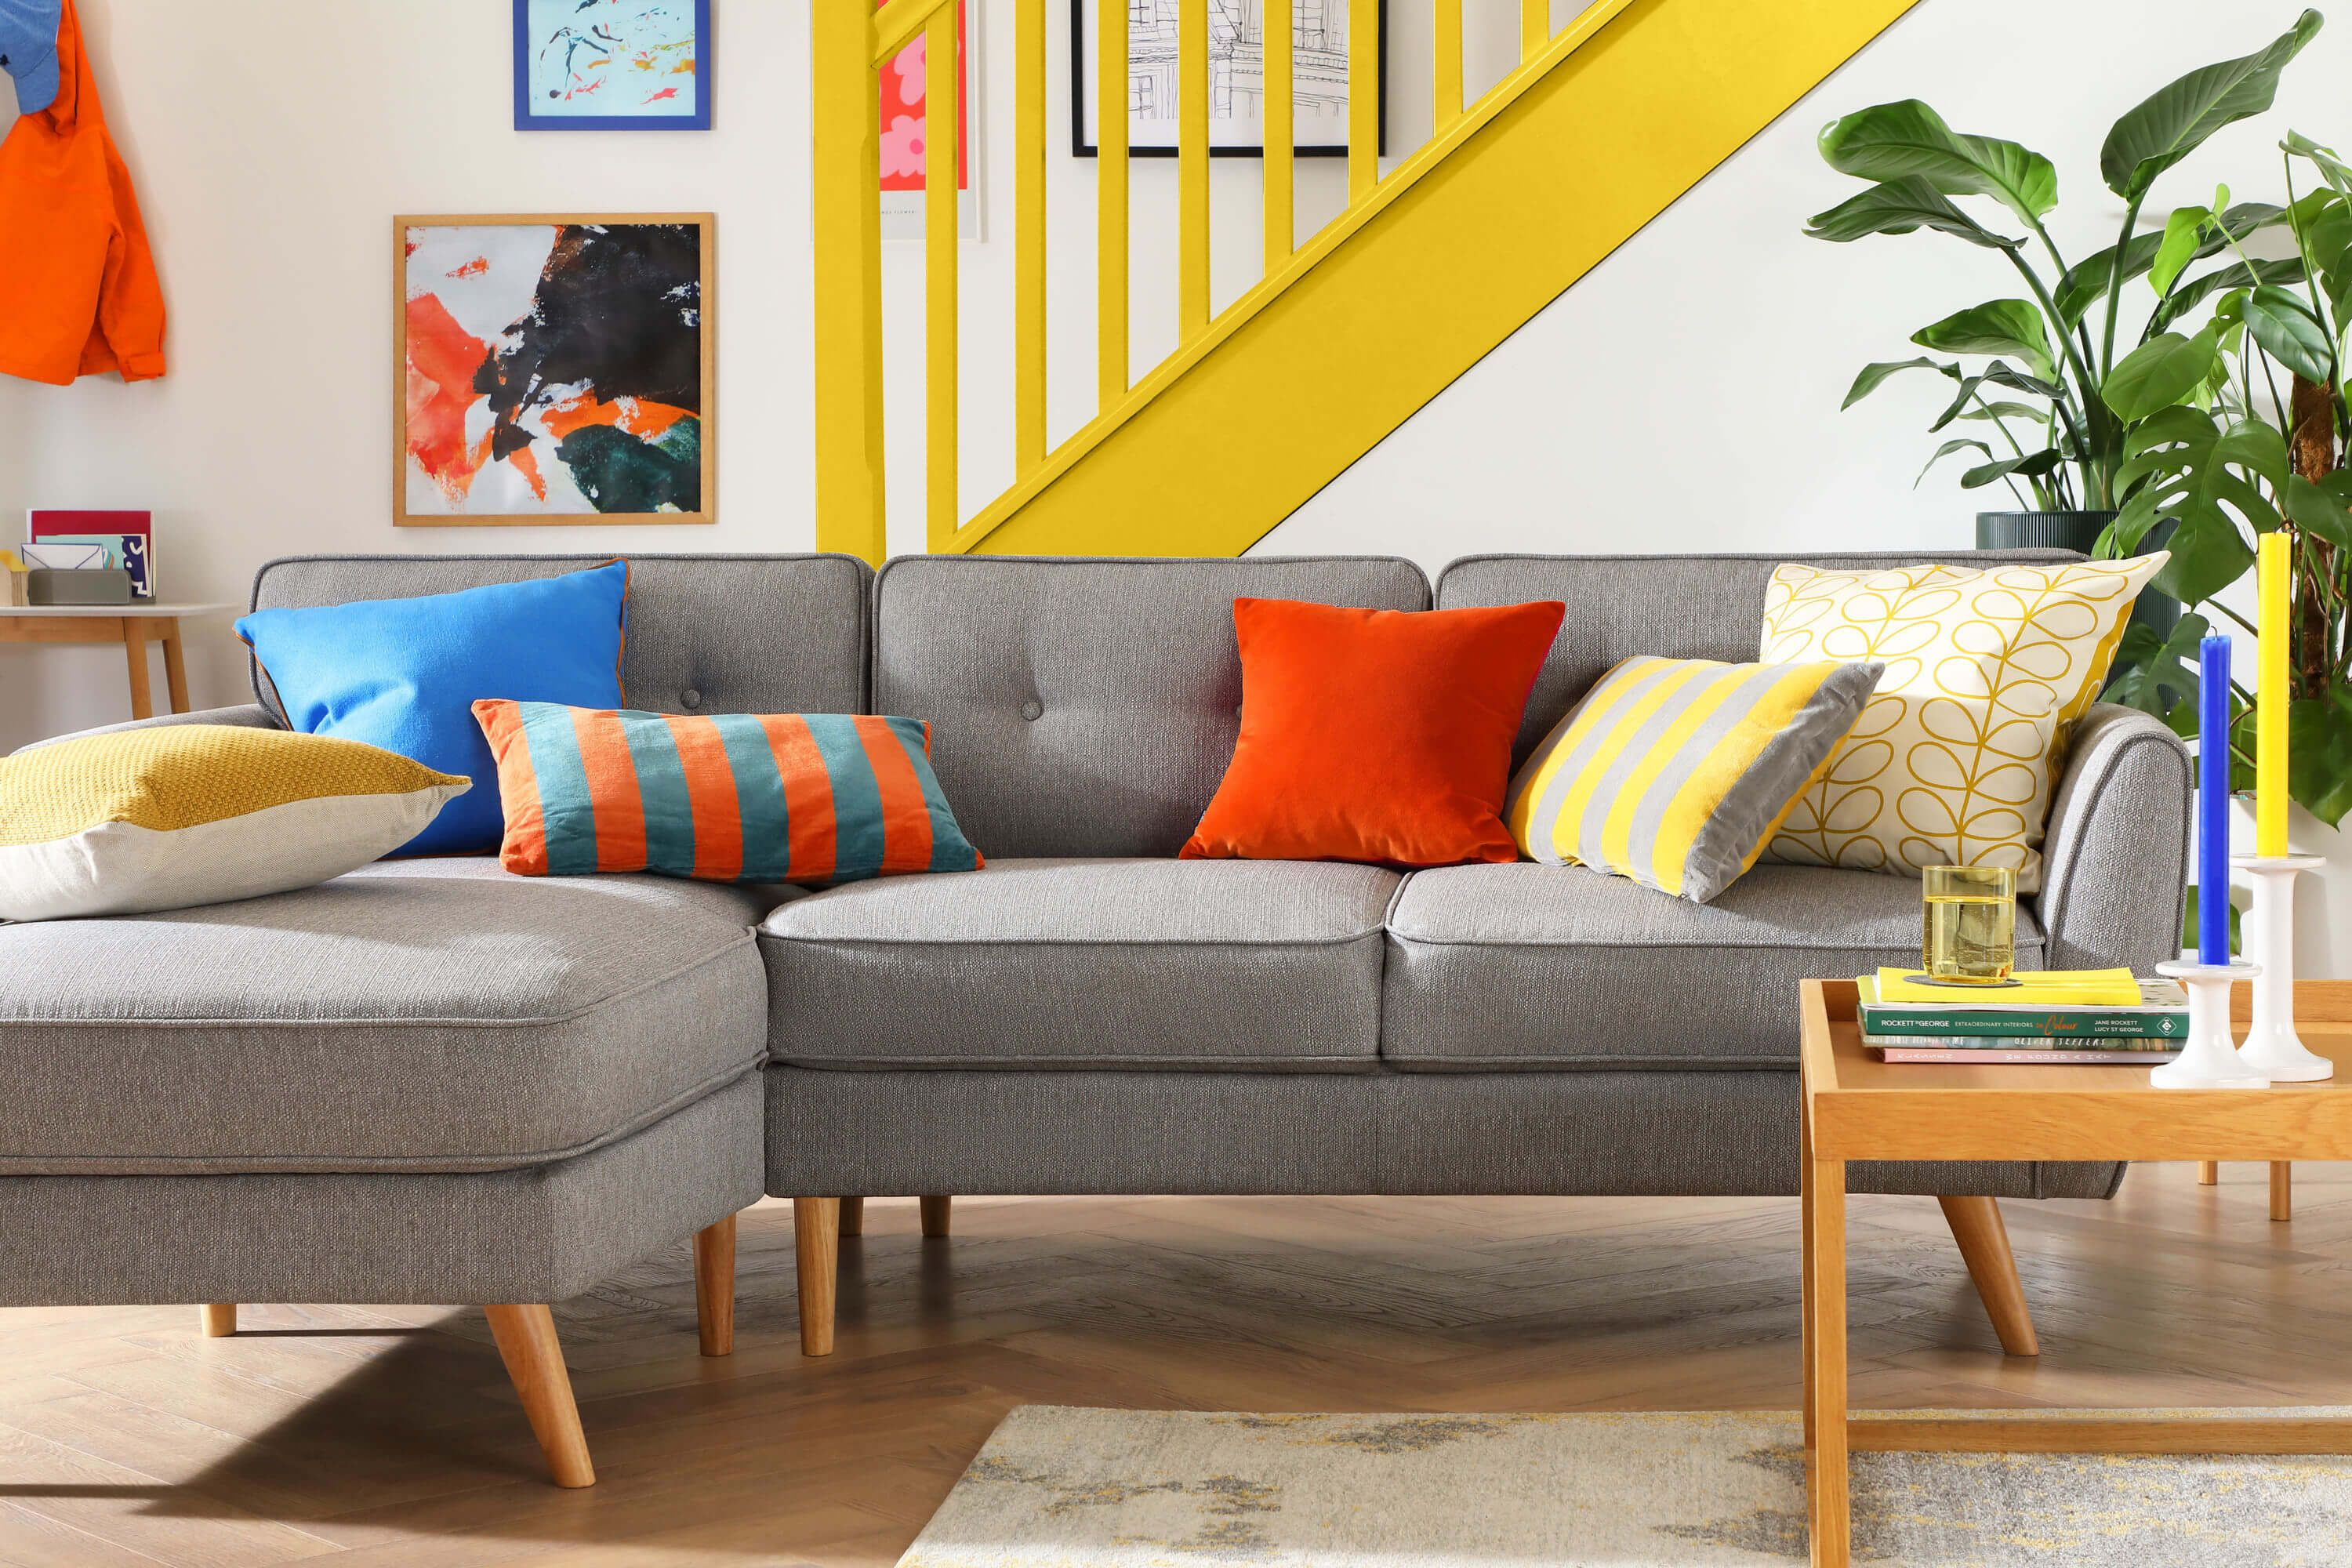 Grey fabric sofa in a bright and modern living room with yellow accents